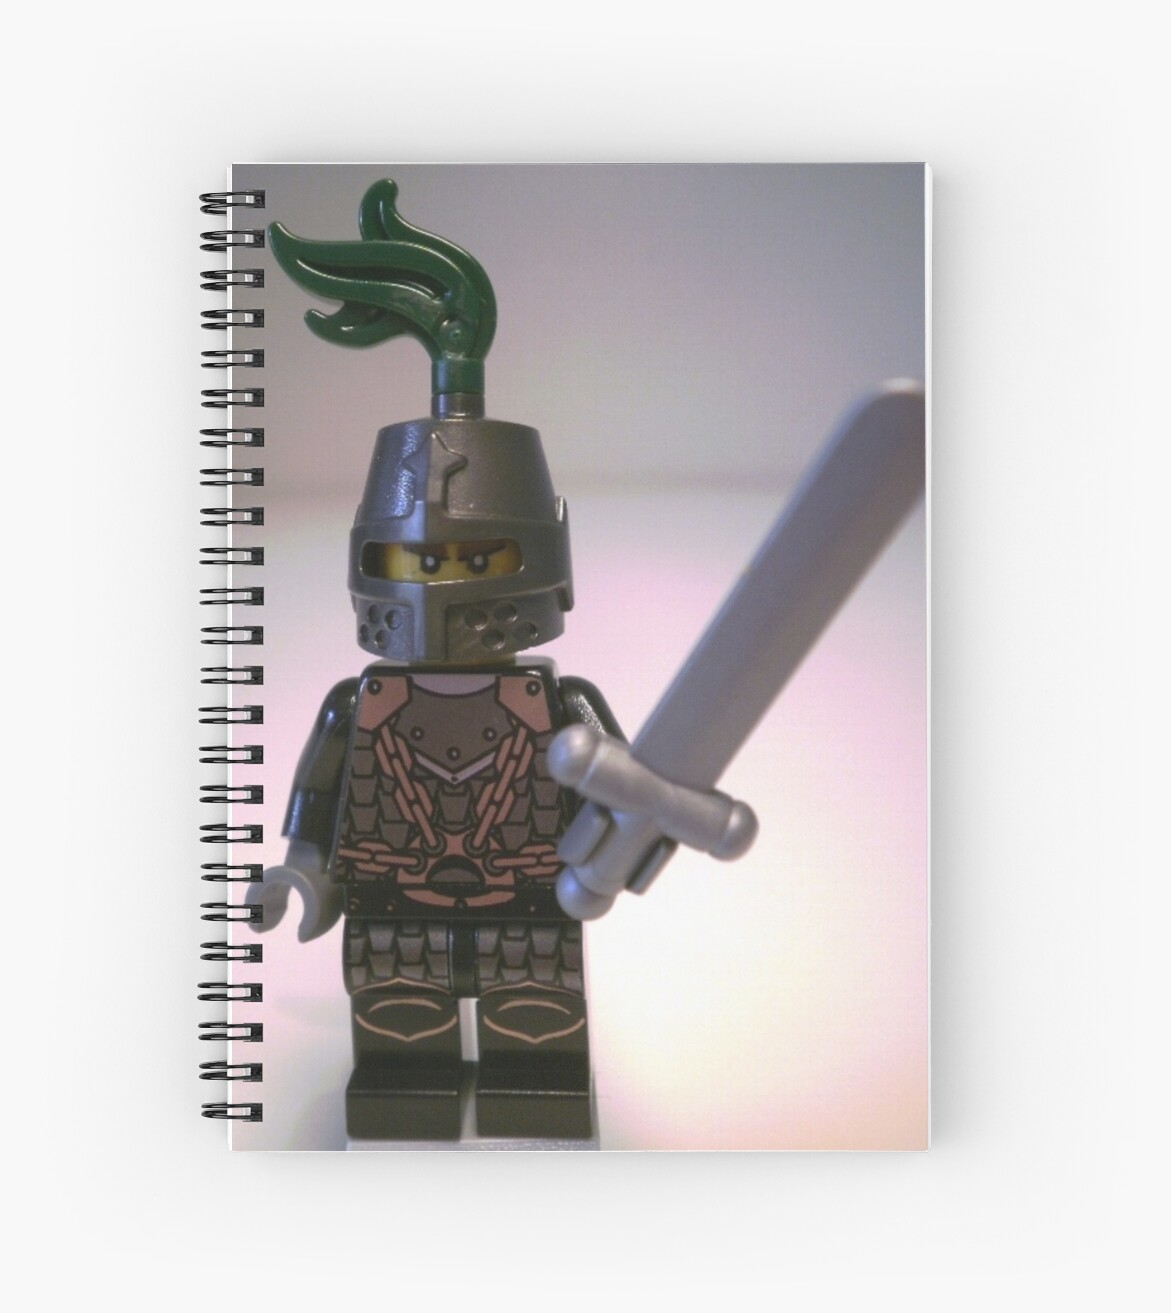 Dragon Knight with Chain Mail & Helmet Minifigure by Customize My Minifig